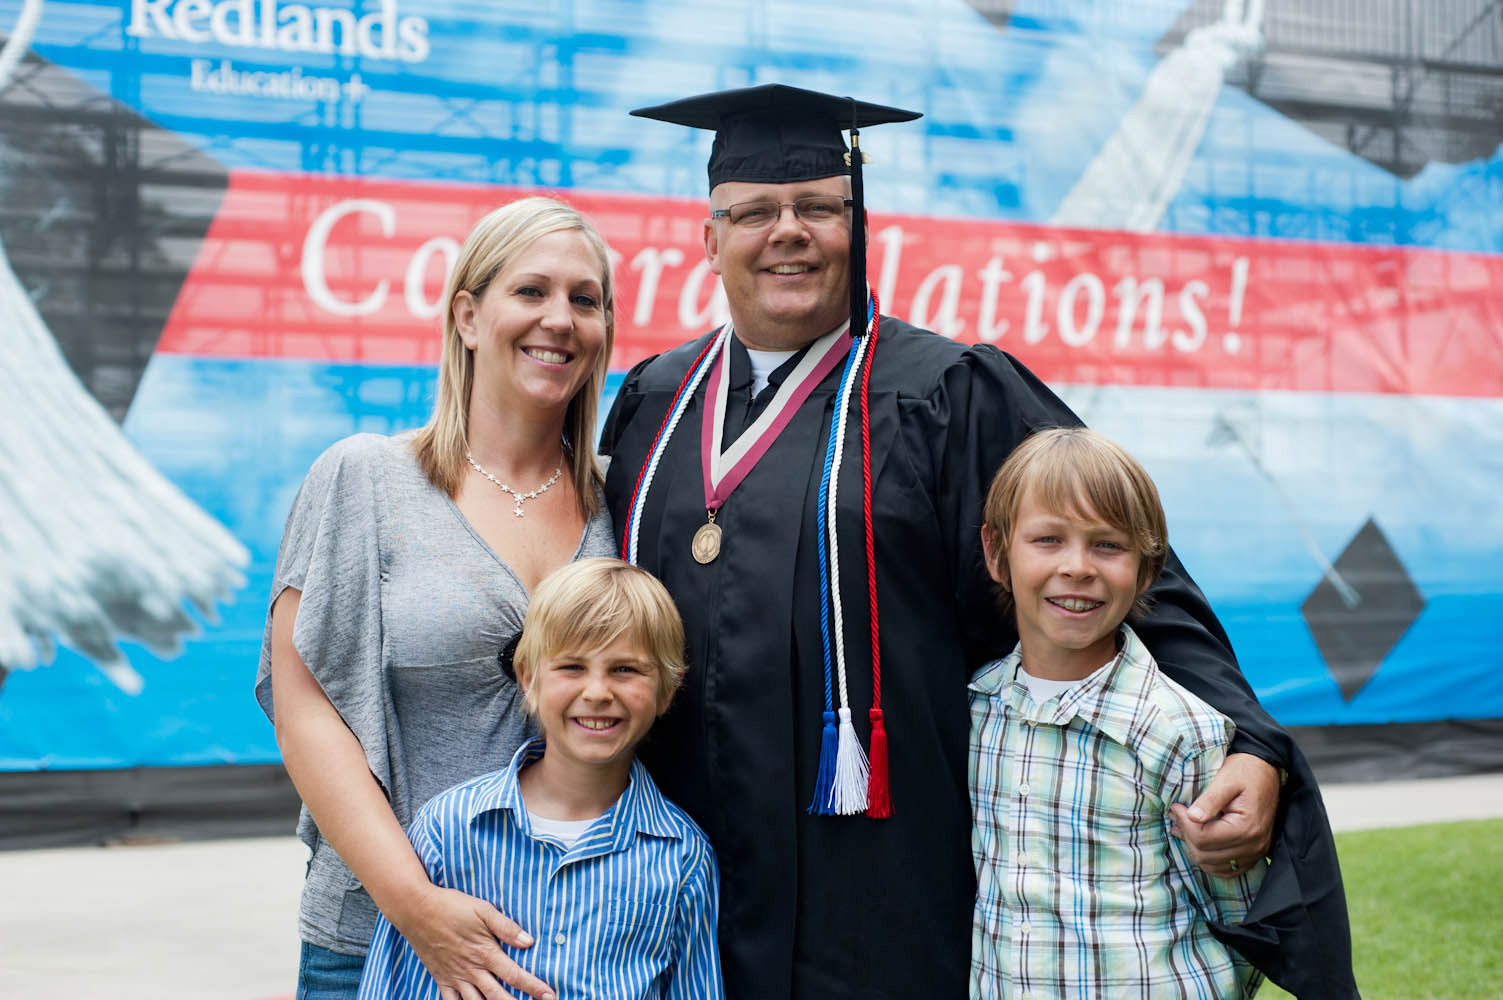 Commencement Graduate with family